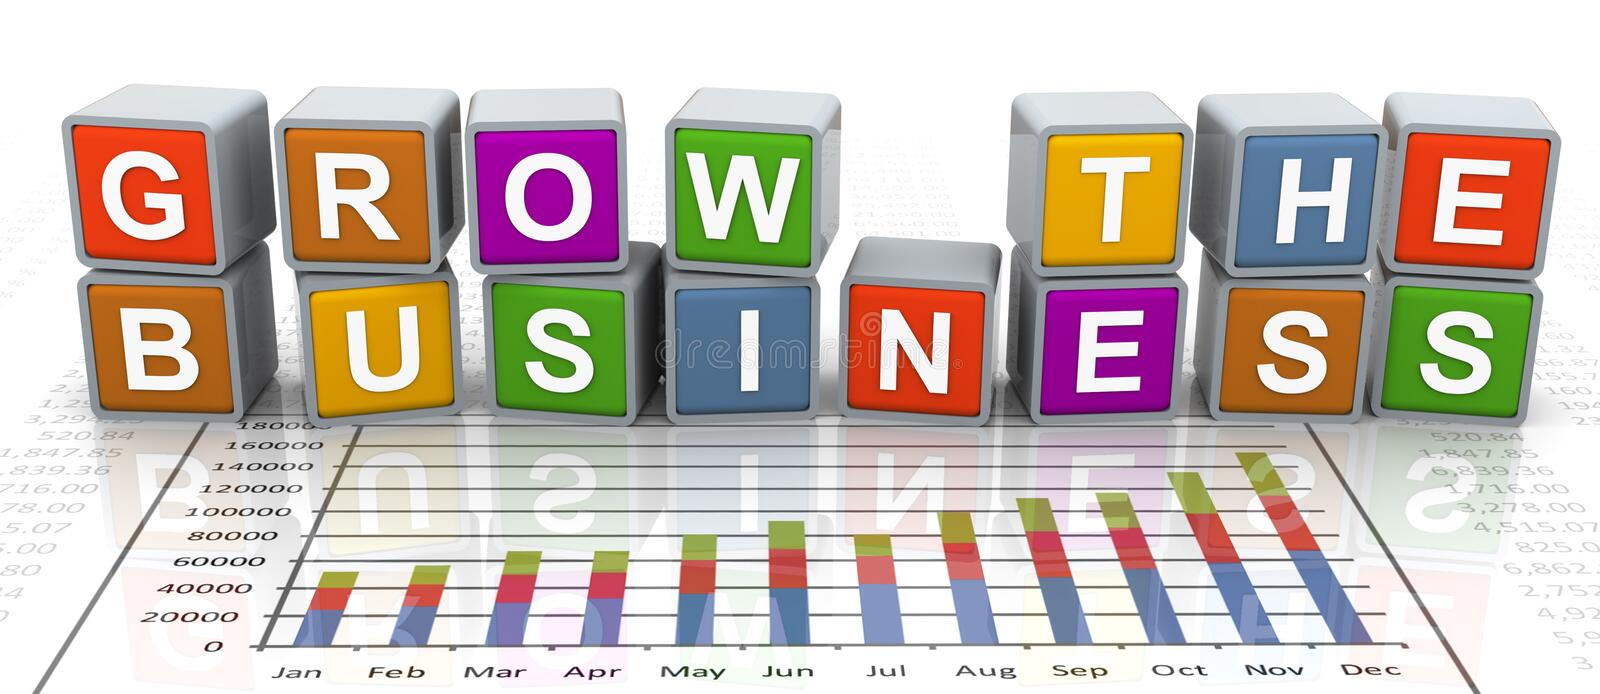 3d buzzword text 'grow the business' vector illustration